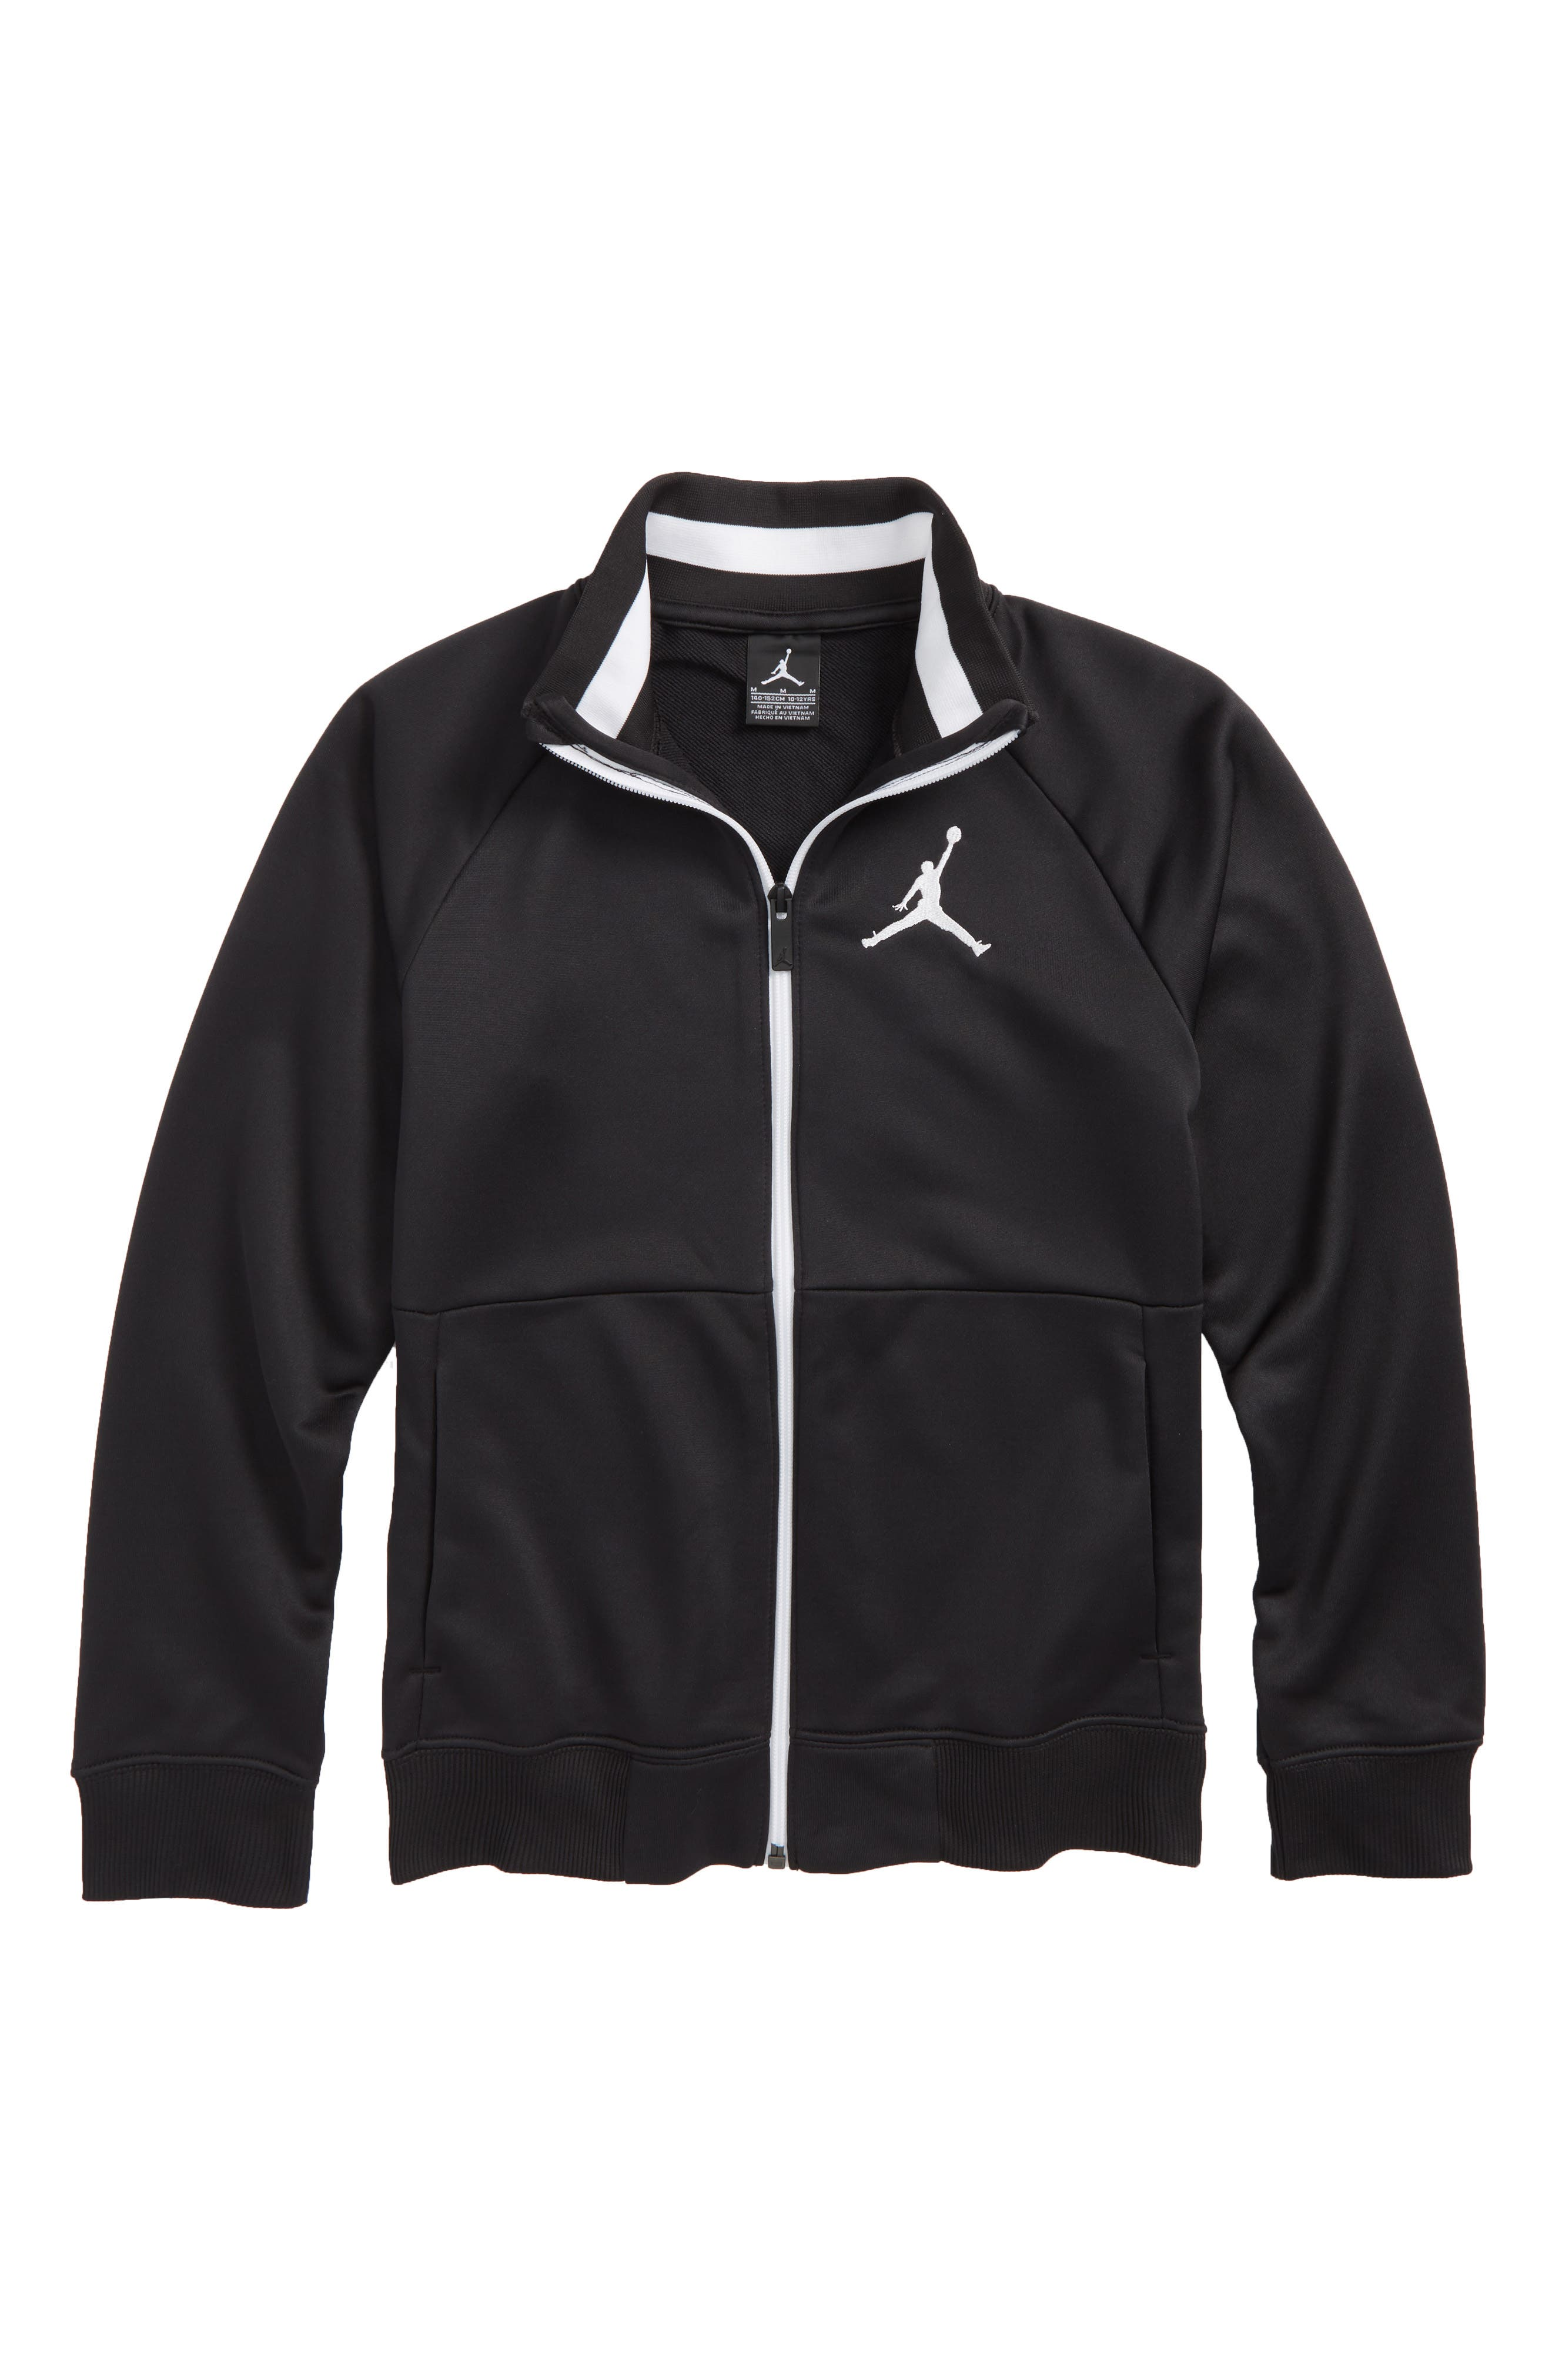 Jordan AJ 90s Tricot Jacket,                             Main thumbnail 1, color,                             004